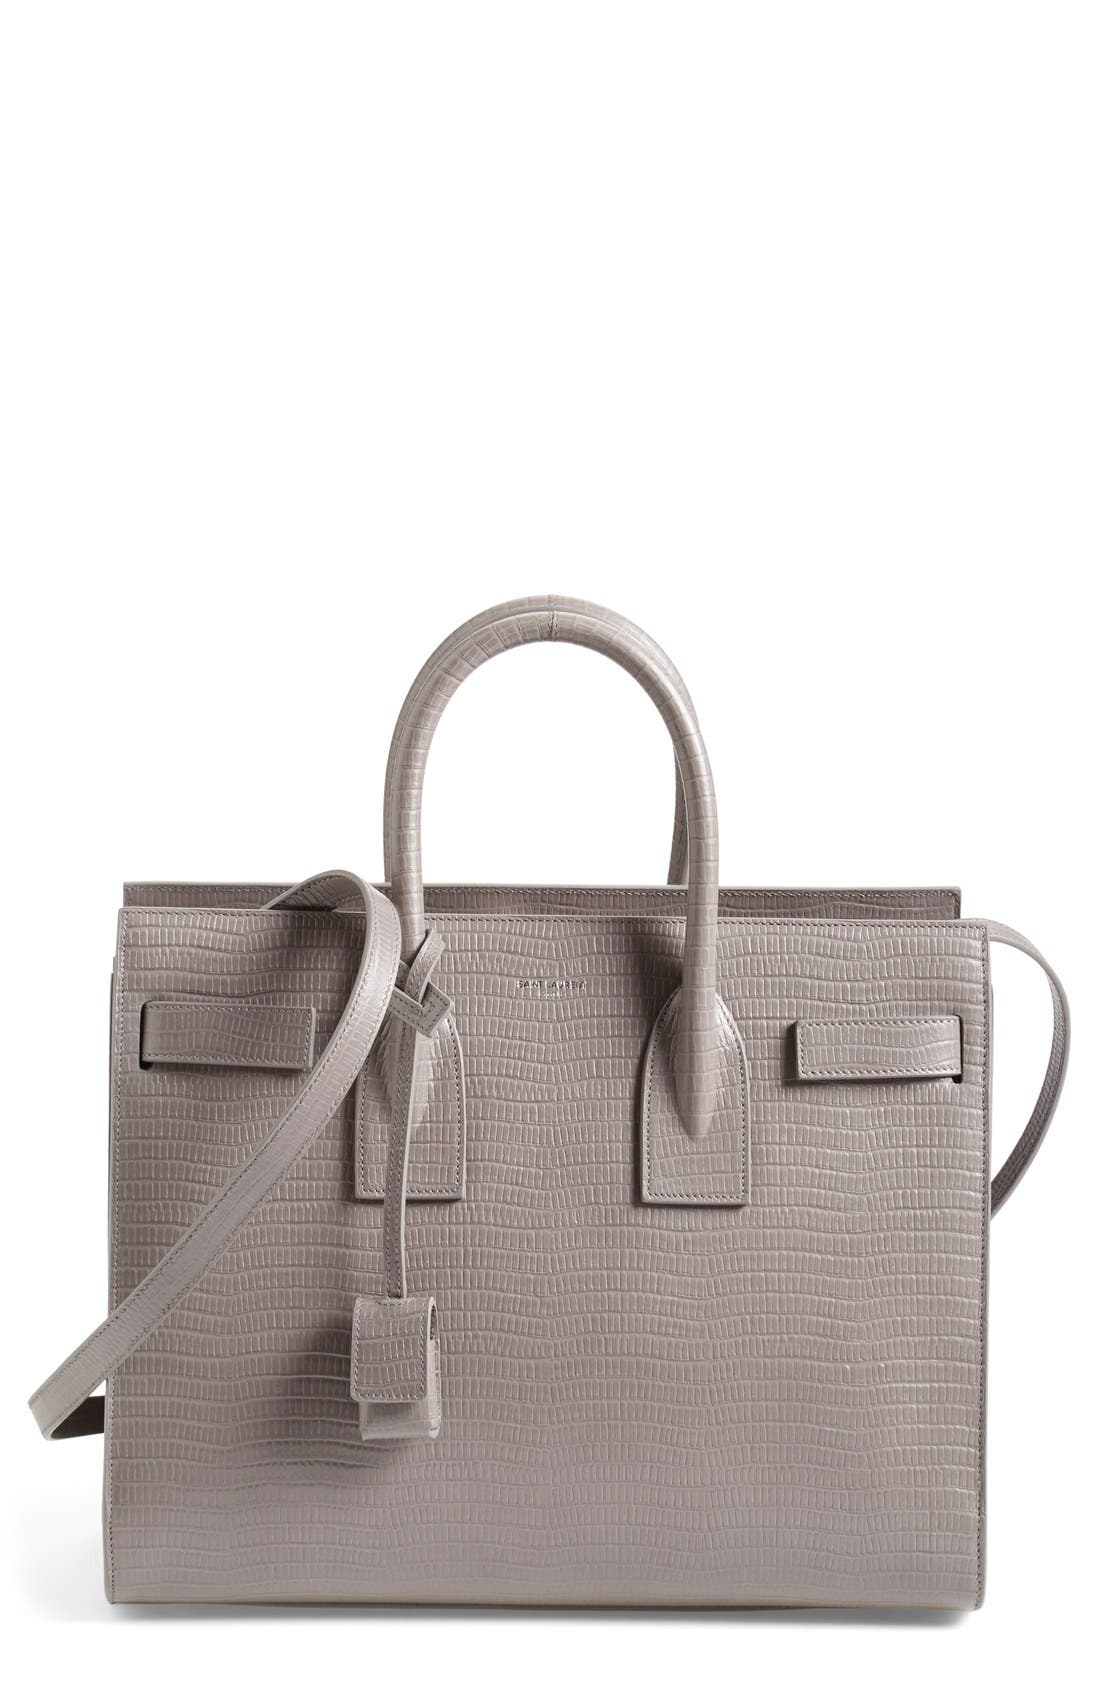 Main Image - Saint Laurent 'Small Sac de Jour' Snake Embossed Leather Tote